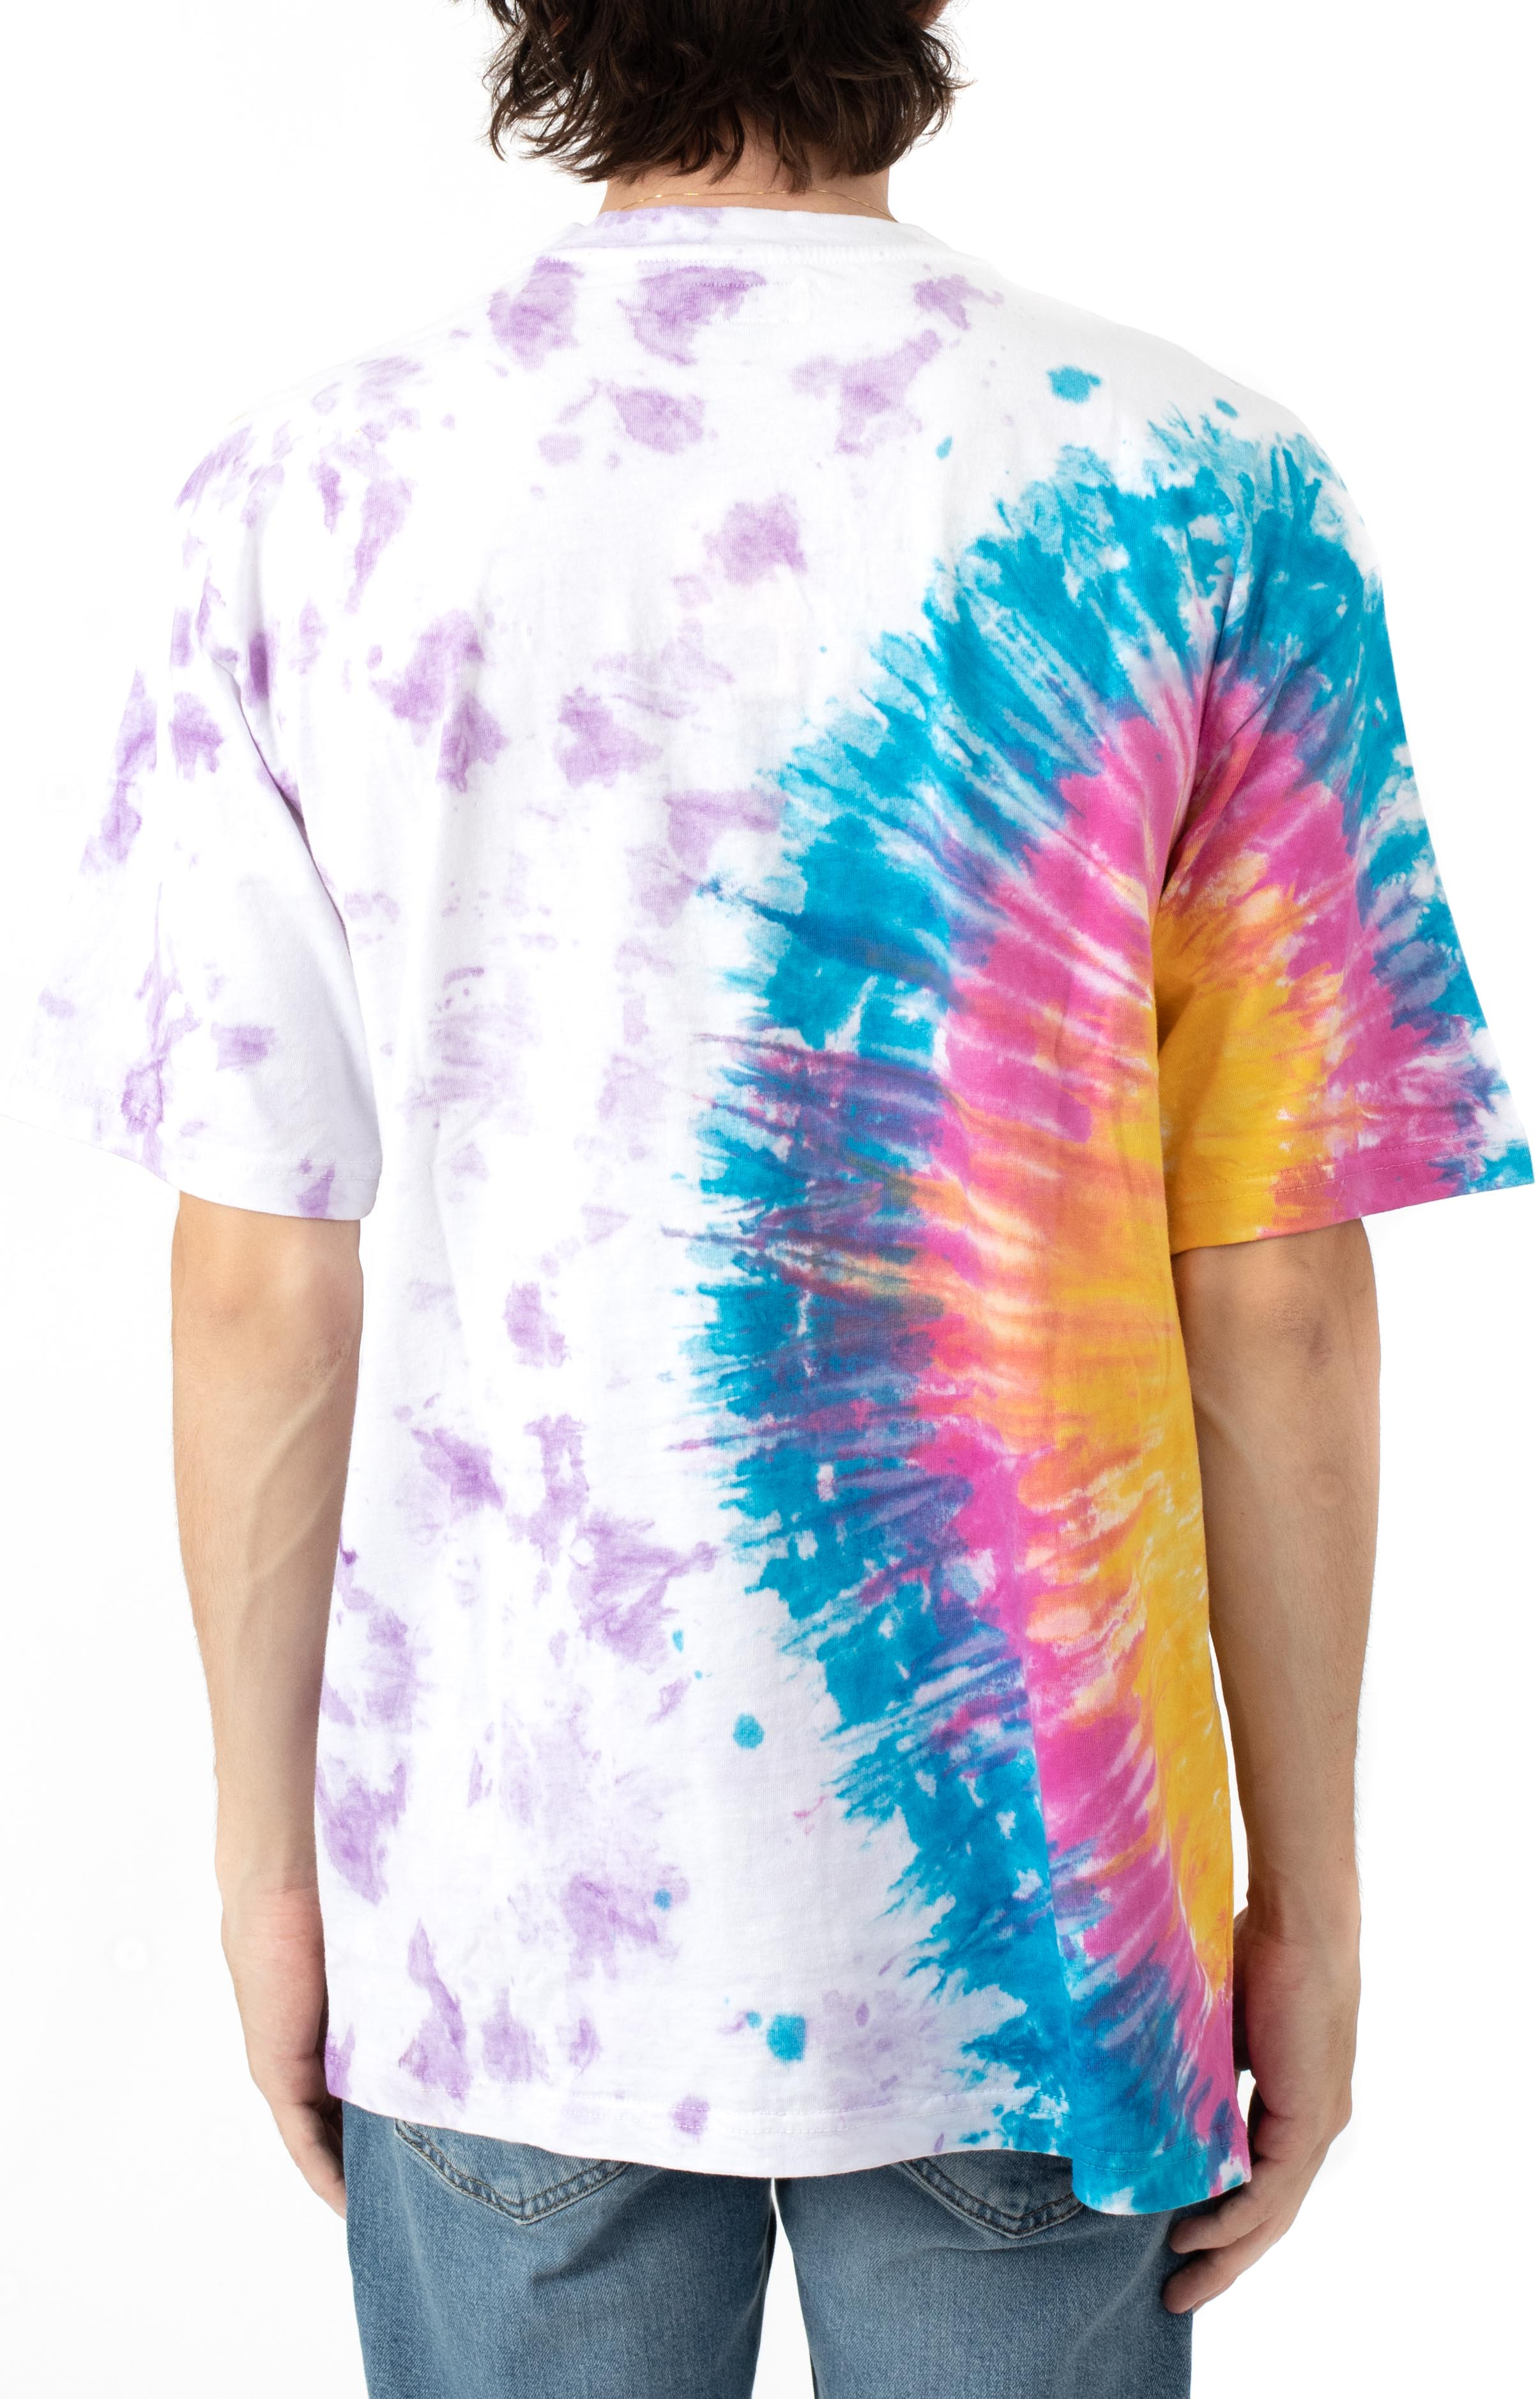 By The Water T-Shirt - Tie-Dye  3